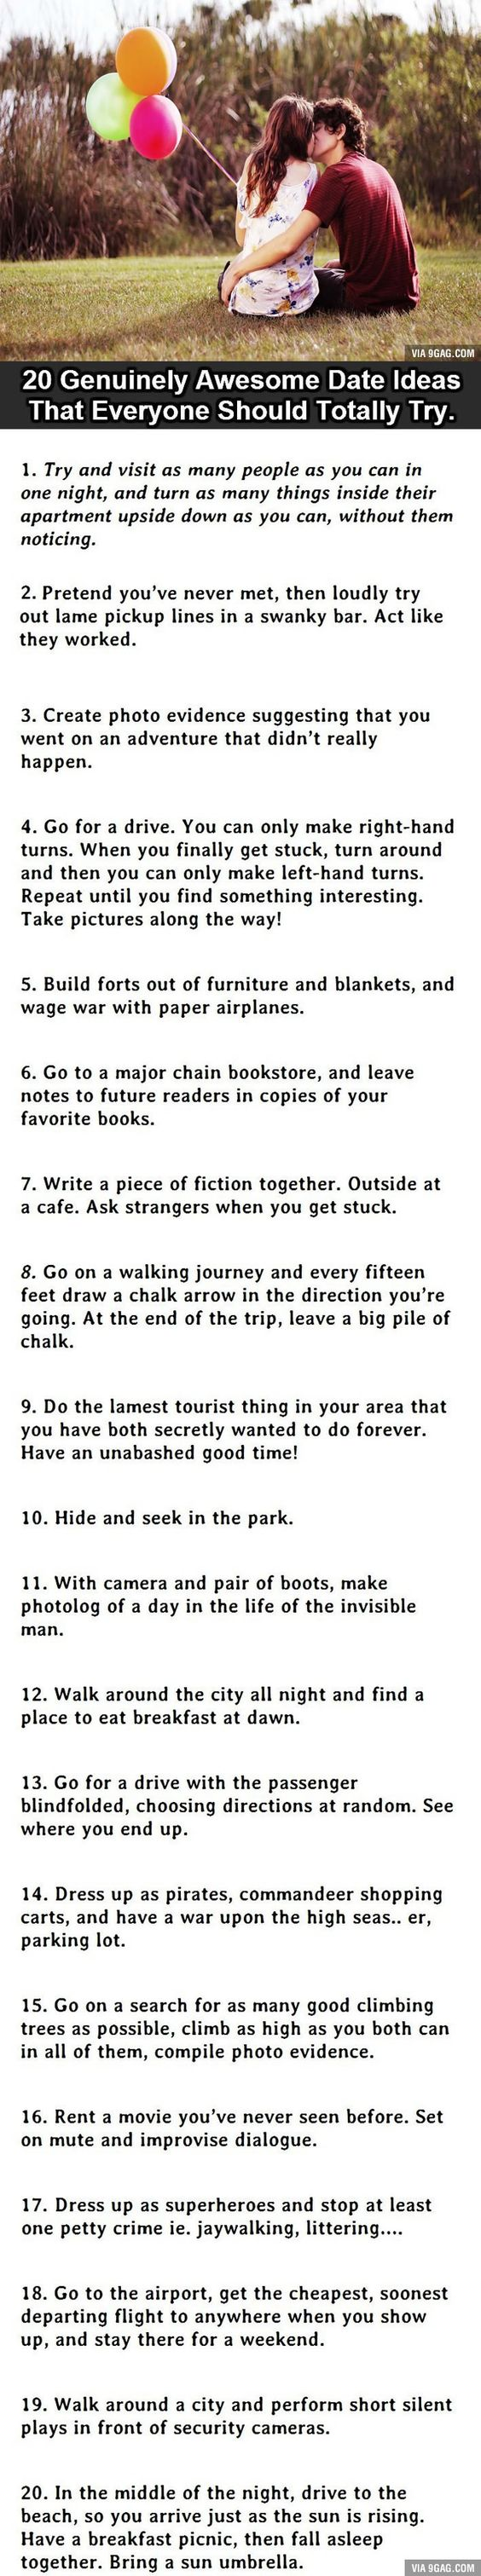 20 Uniquely Awesome Date Ideas. #6 Would Freak Everybody Out. Forget them being date ideas, I know what me and my friends are doing this holiday